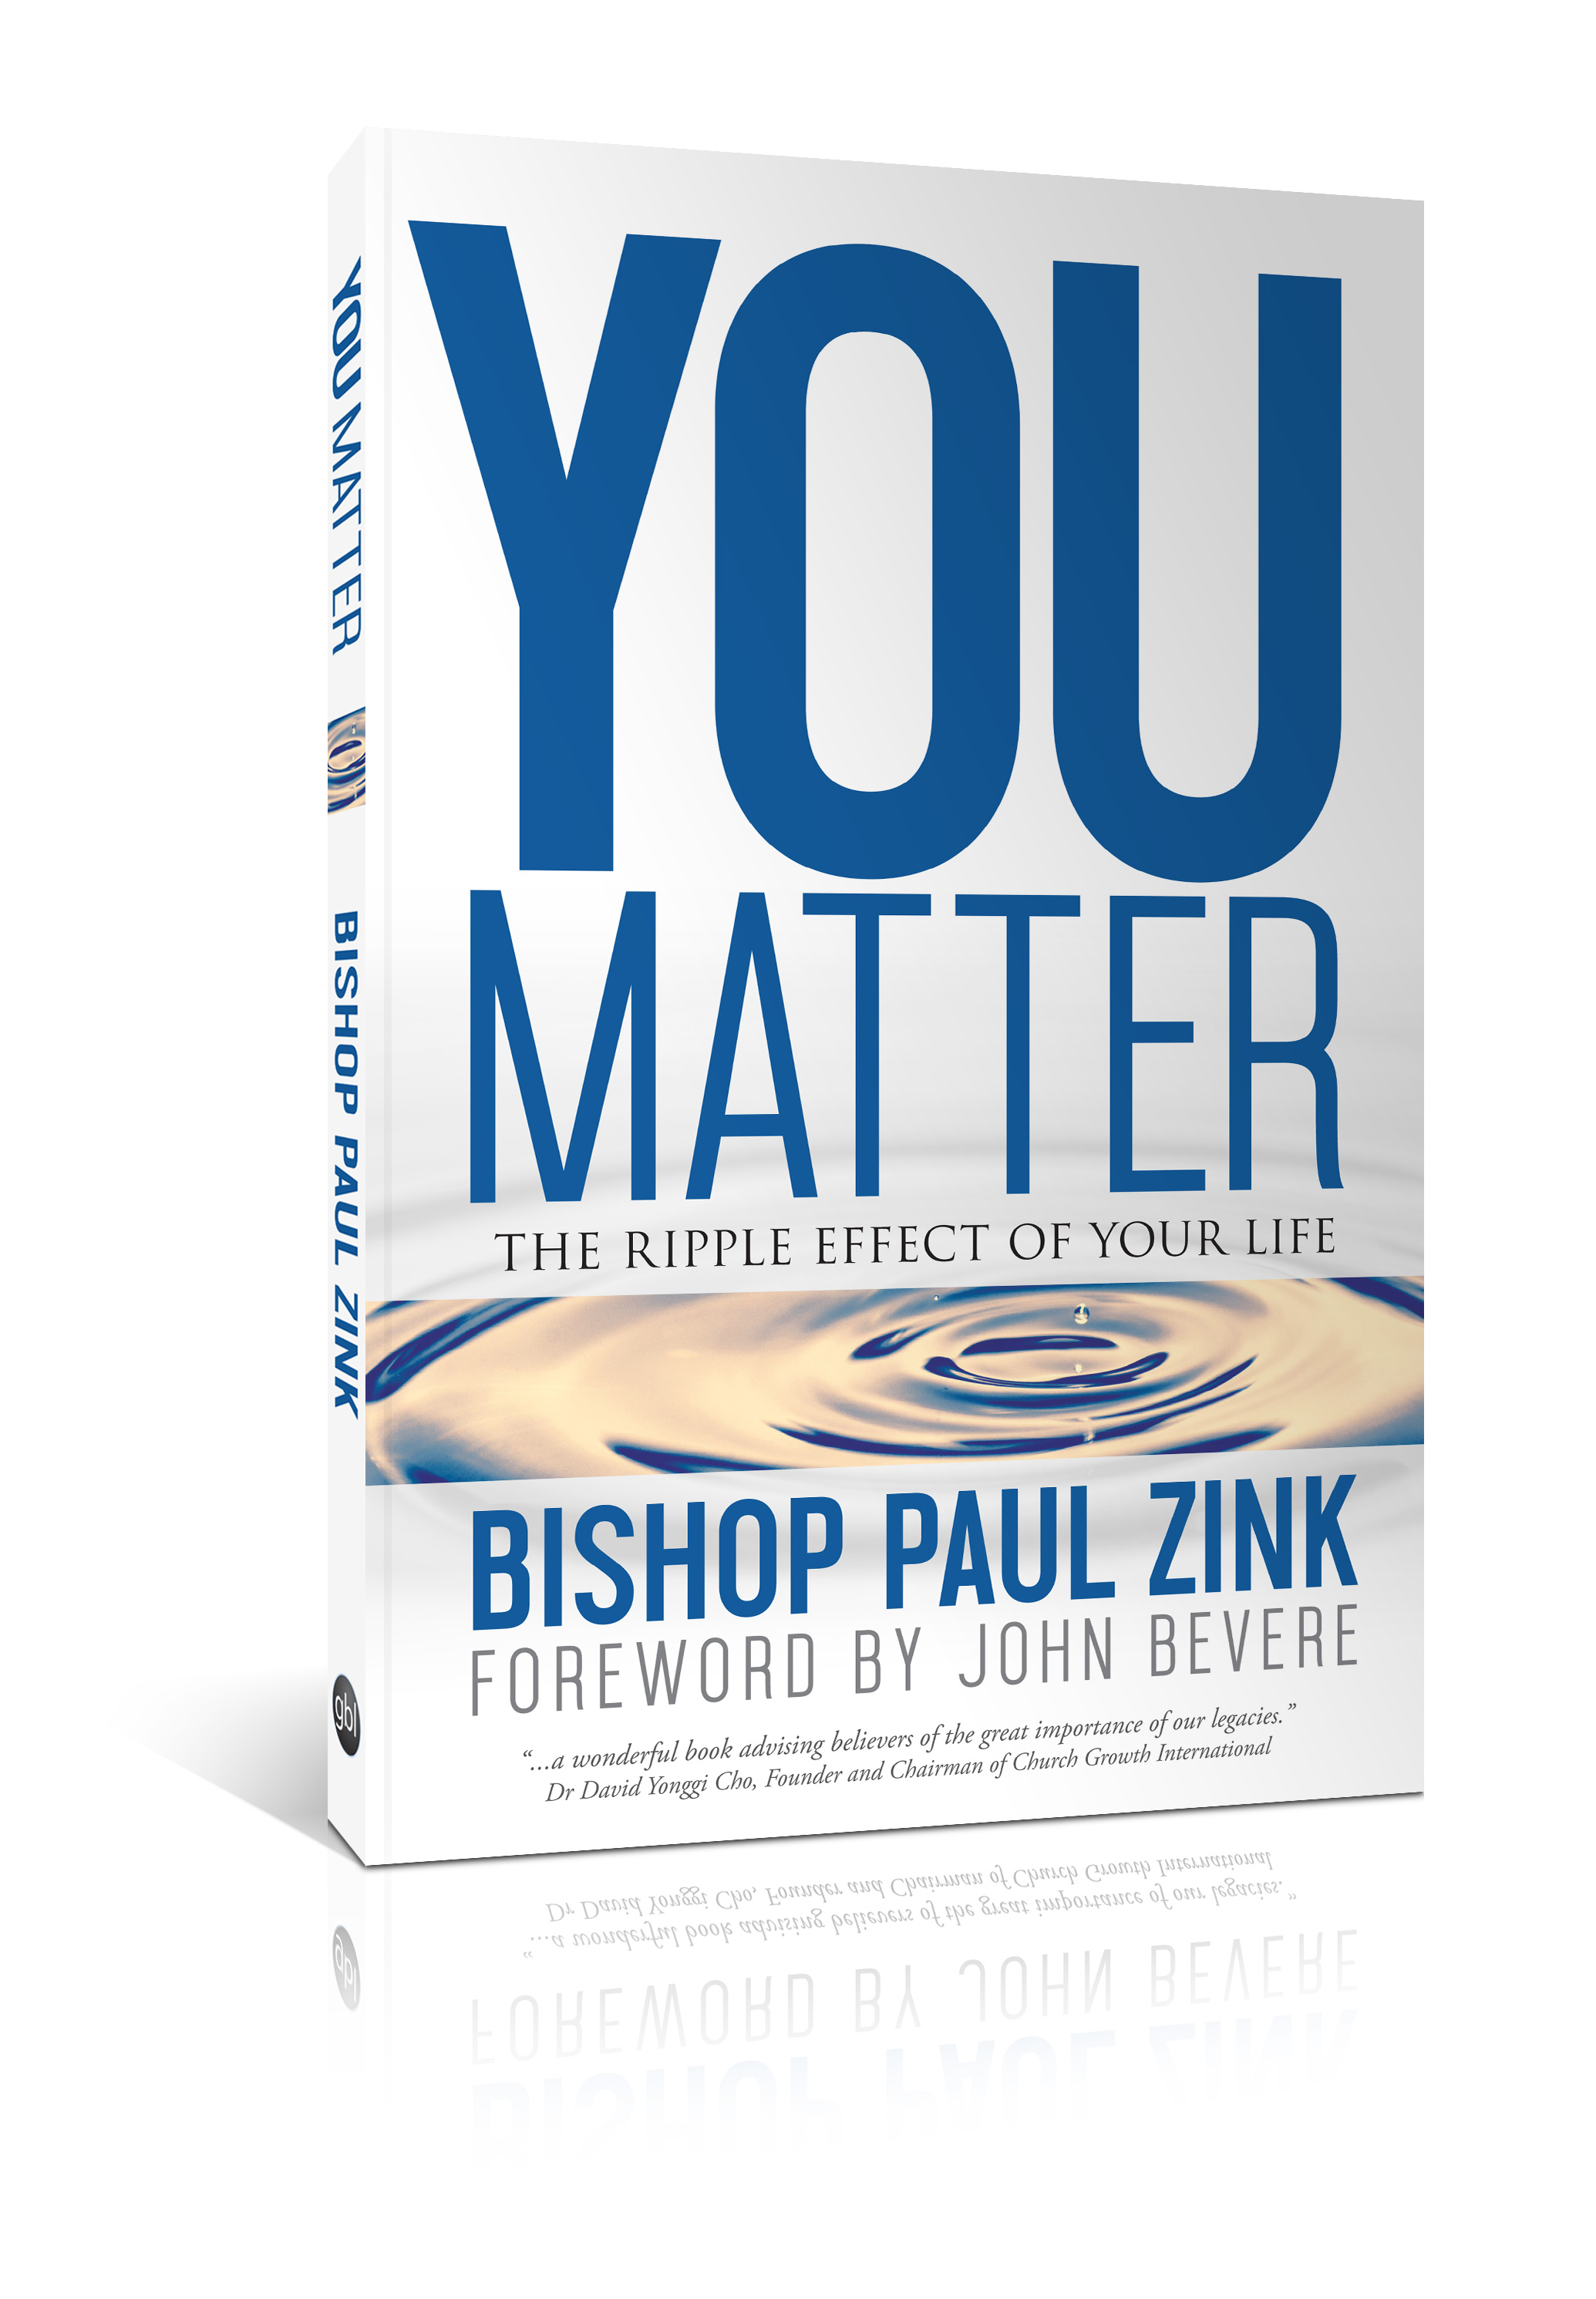 You Matter, by Bishop Paul Zink